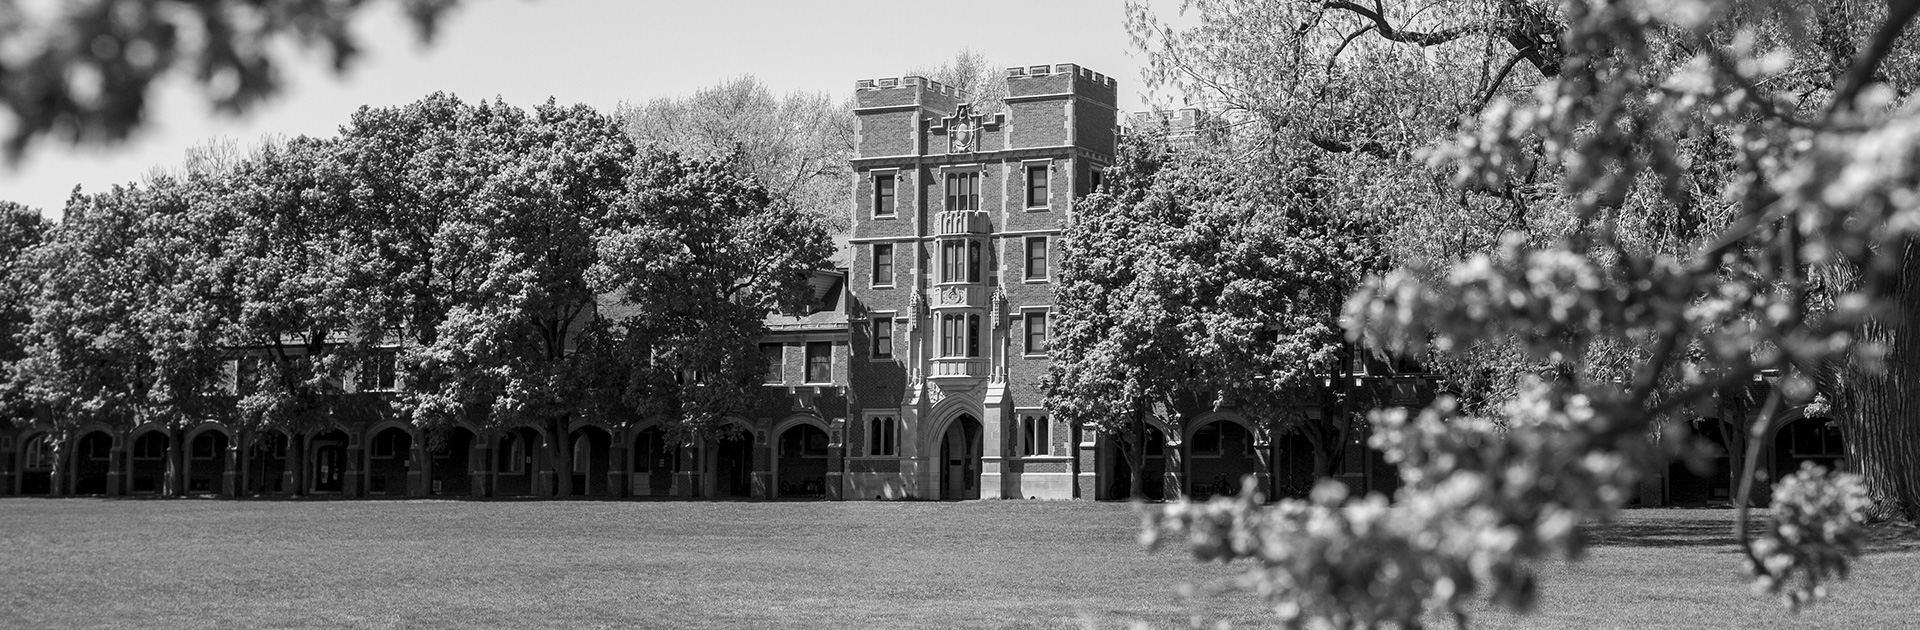 A black and white photo of Gates tower surrounded by trees.